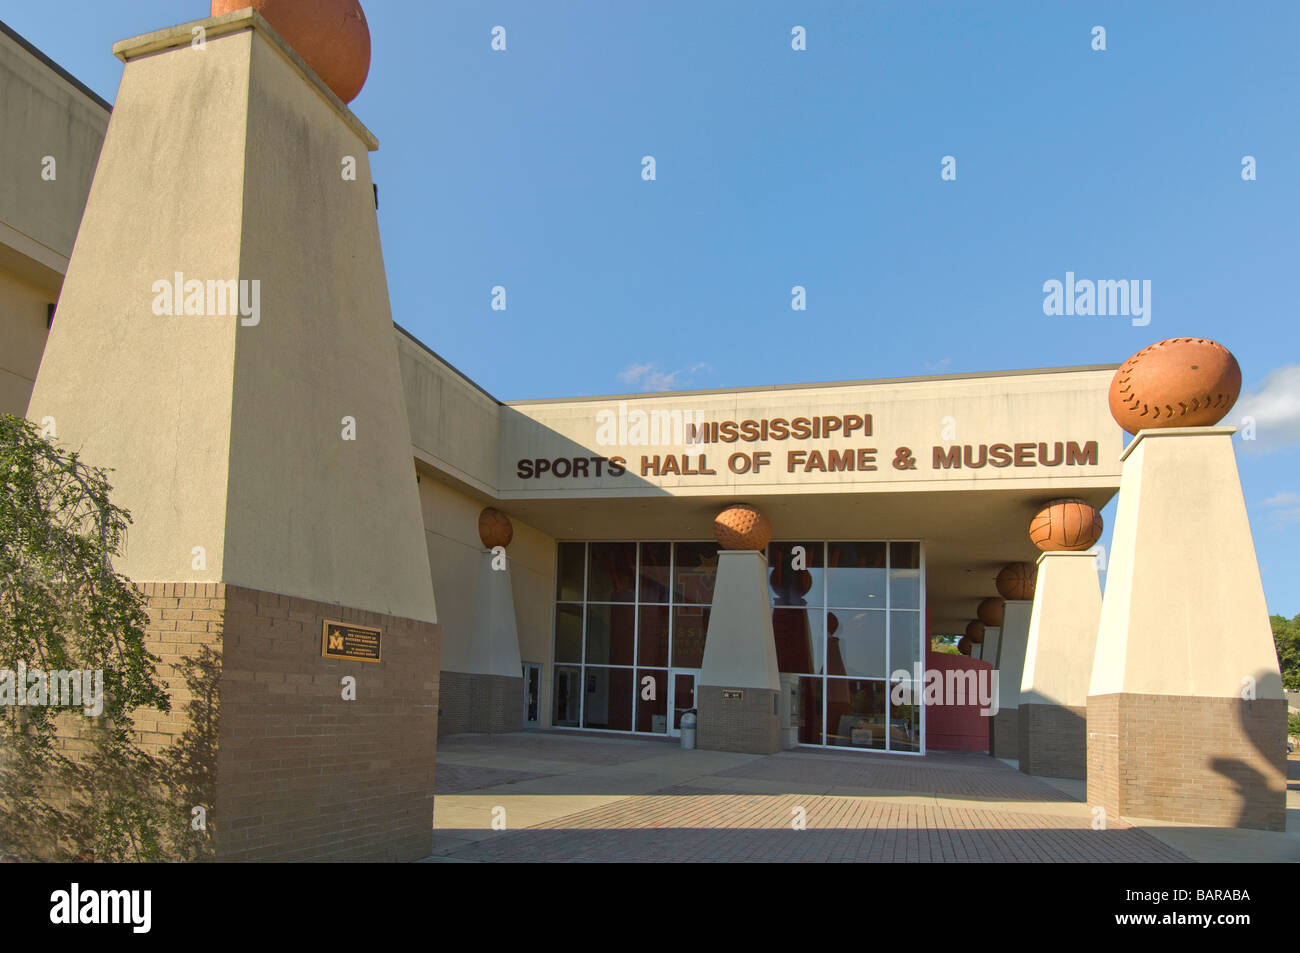 Mississippi Sports Hall of Fame and Museum in Jackson, Mississippi Stockbild